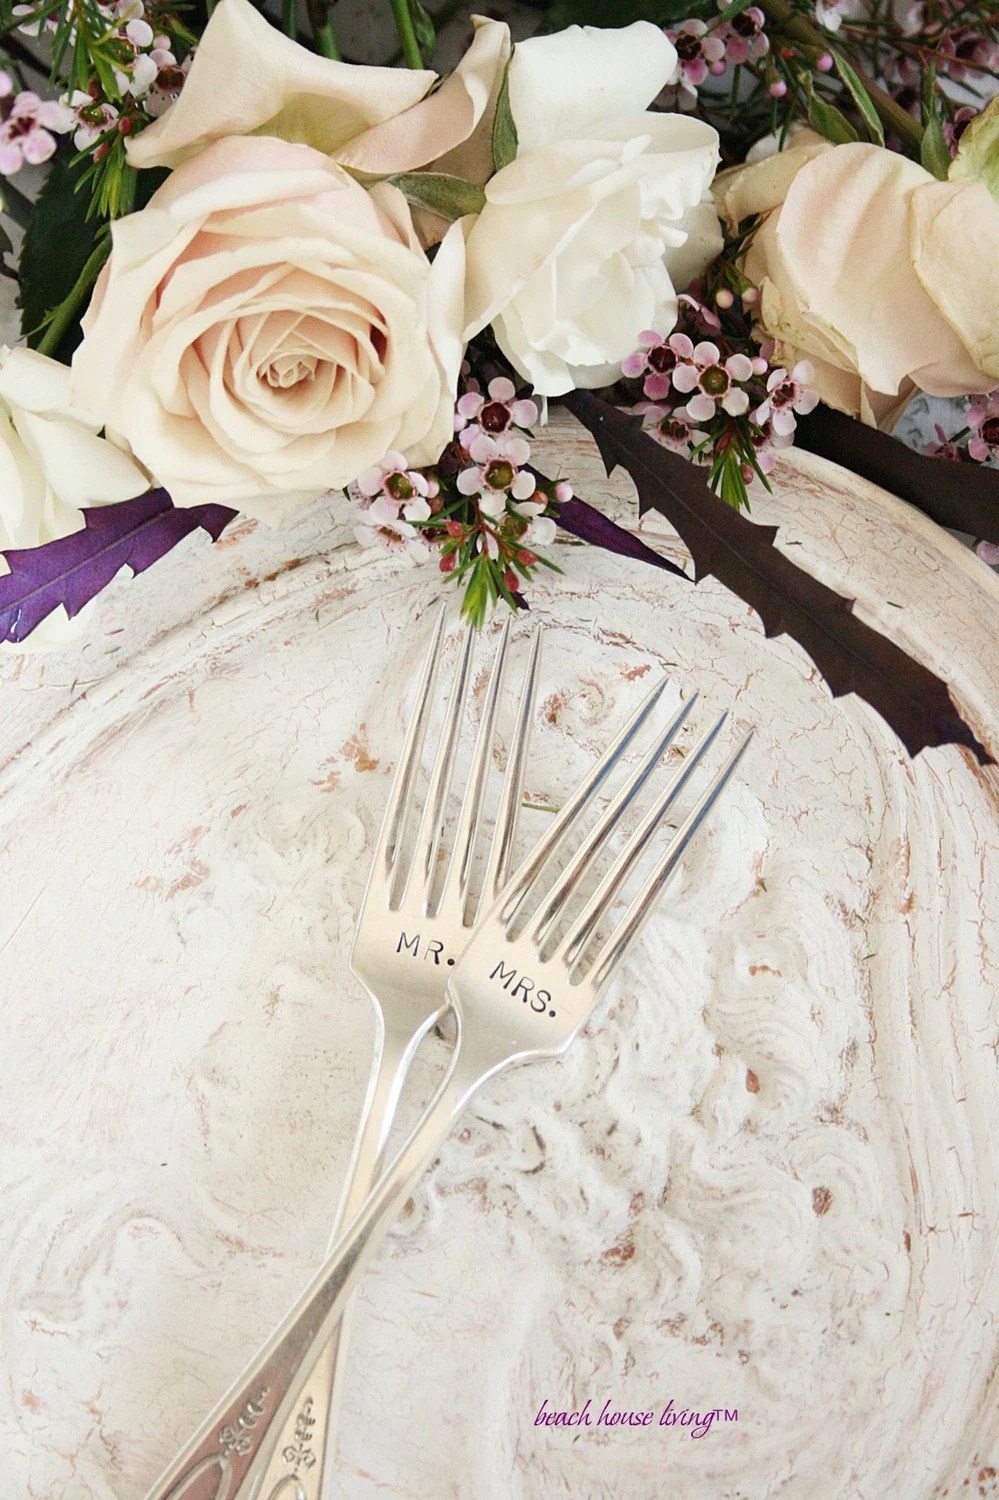 Vintage Silverware Mr. and Mrs. wedding  forks  recycled silver plated flatware Adam 1917